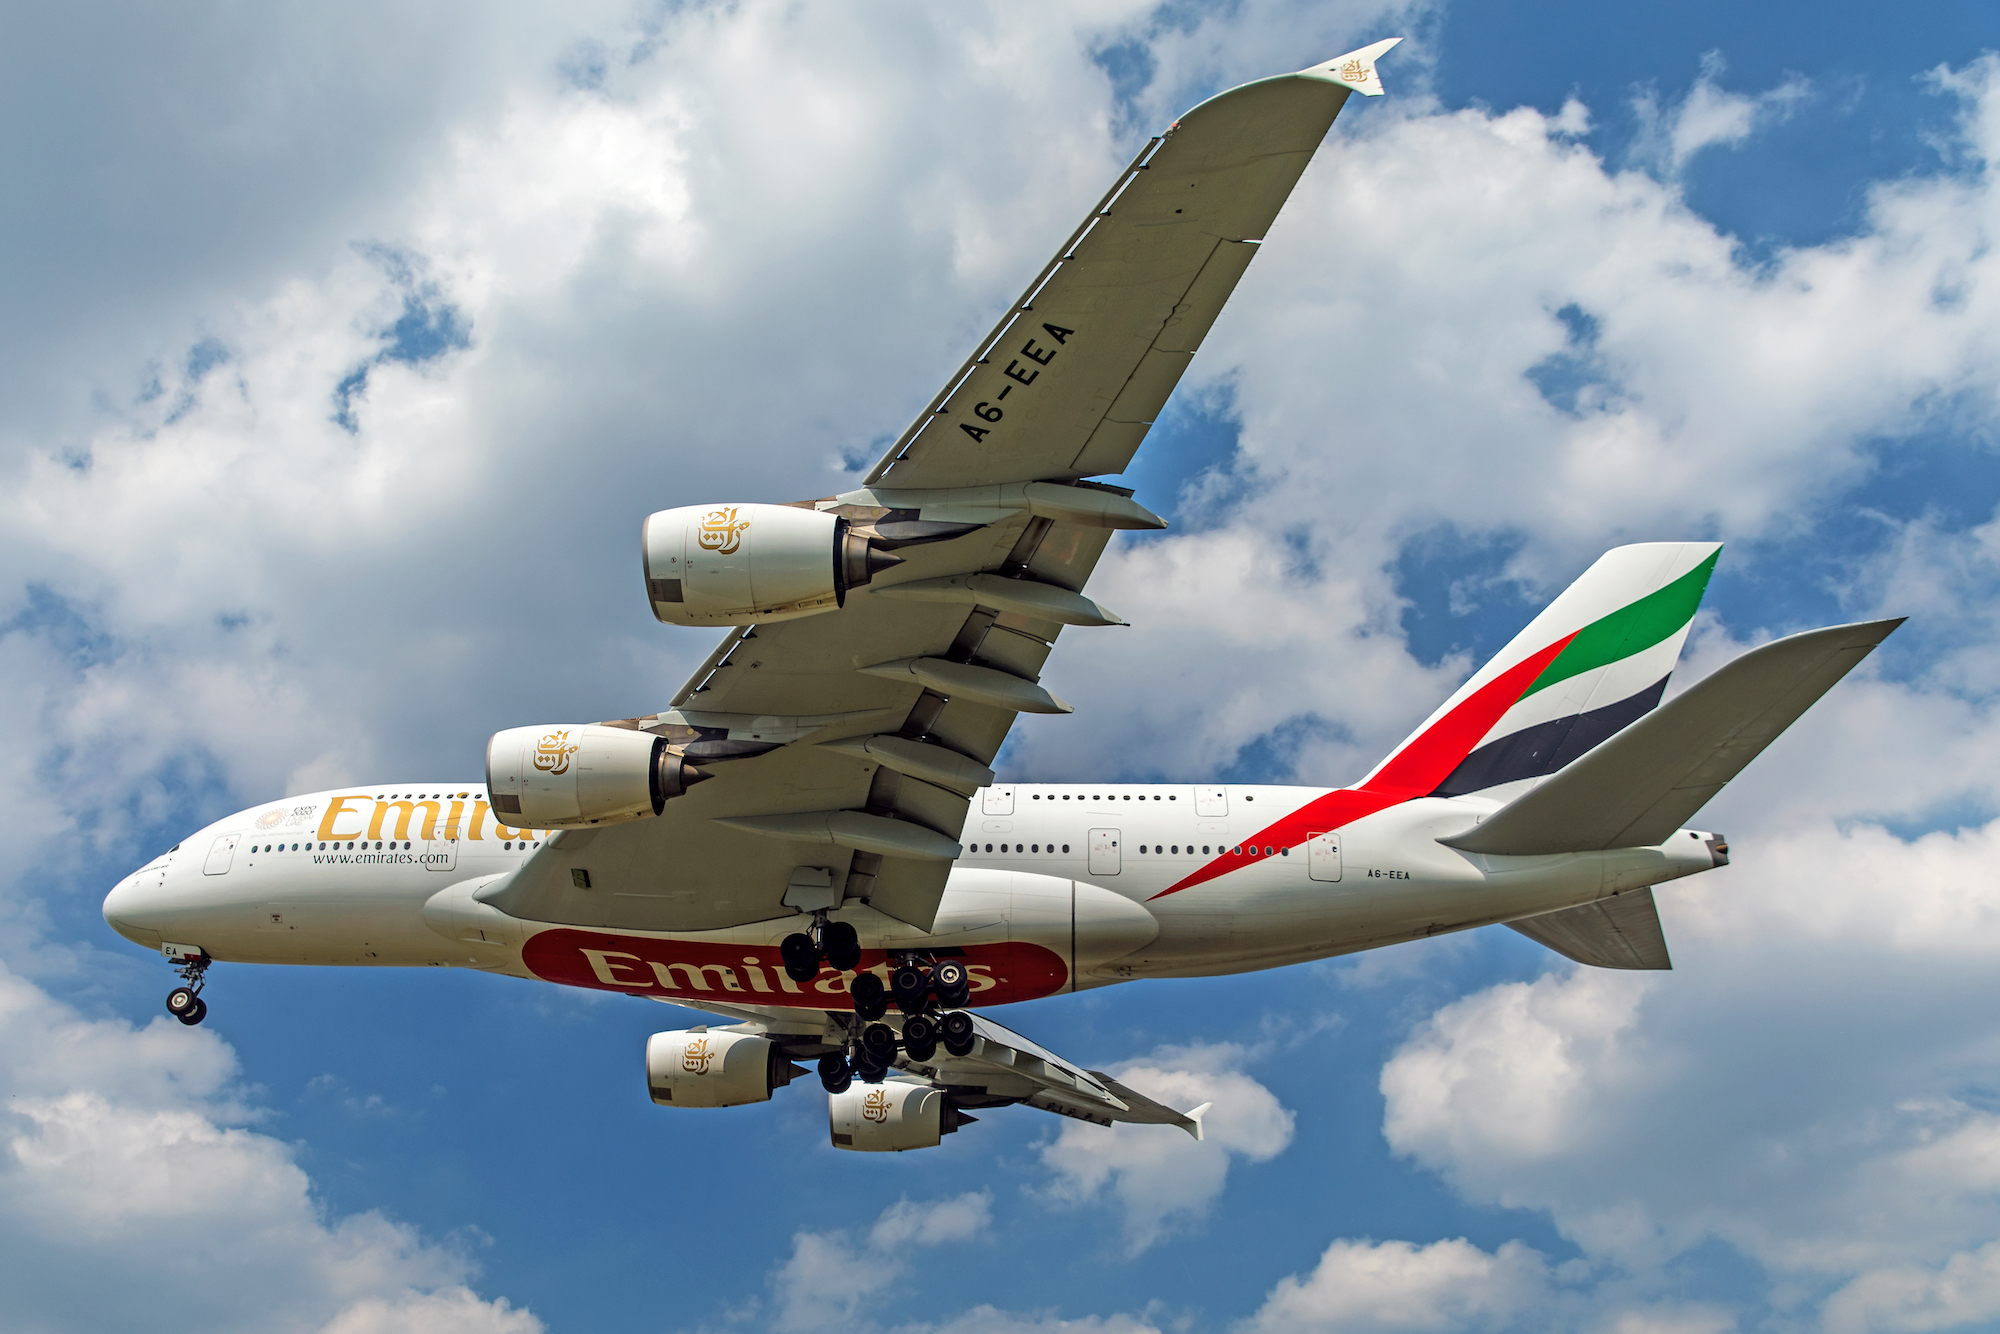 Emirates to fly Airbus A380 super jumbo to London Heathrow and Paris